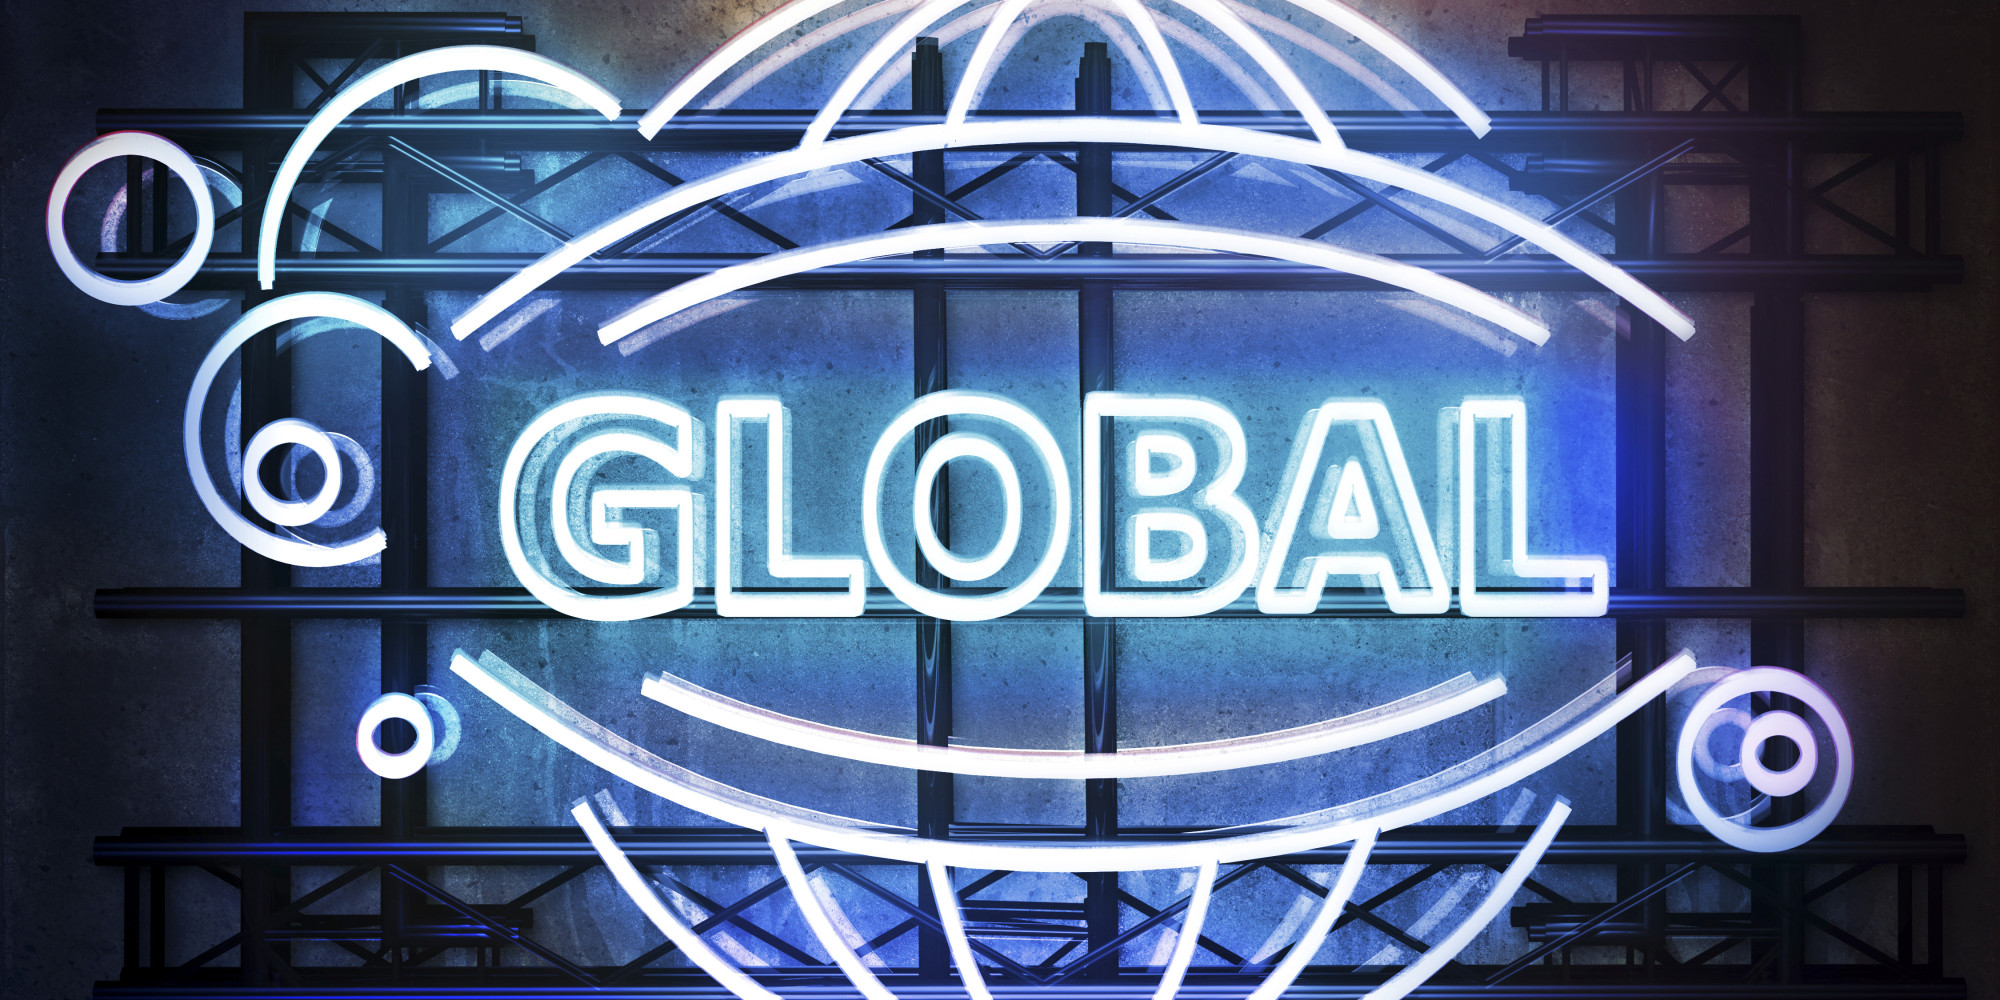 facebook globalization Globalization is a bit of a mixed bag, and there have definitely been winners and losers along the way in this episode john will talk about some of the benefits that have come along with it.